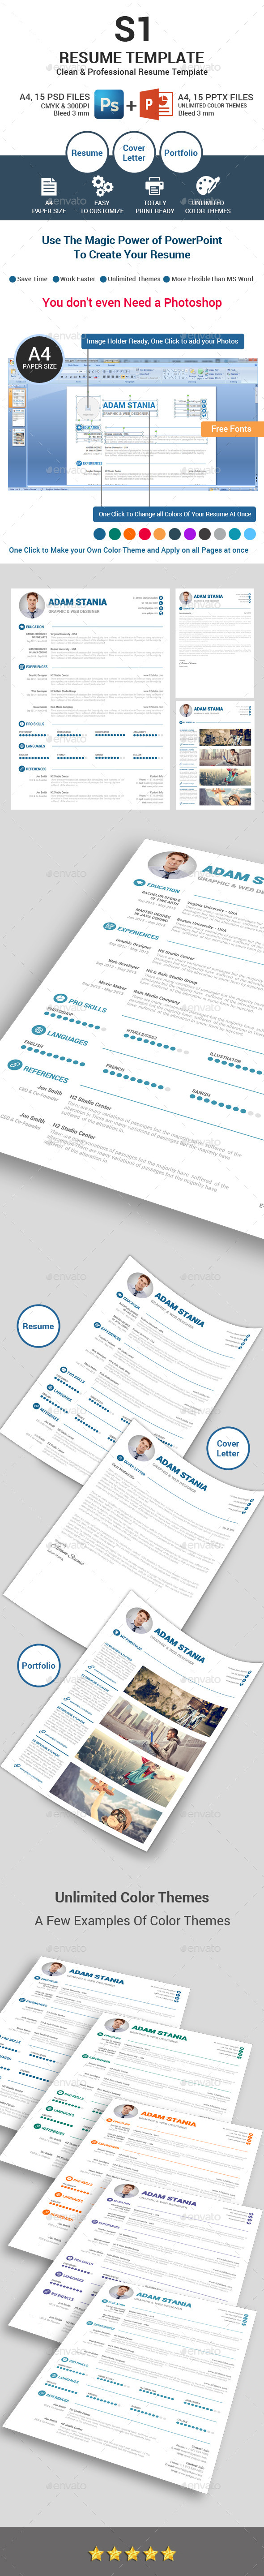 S1 Clean  Resume Template  - Resumes Stationery